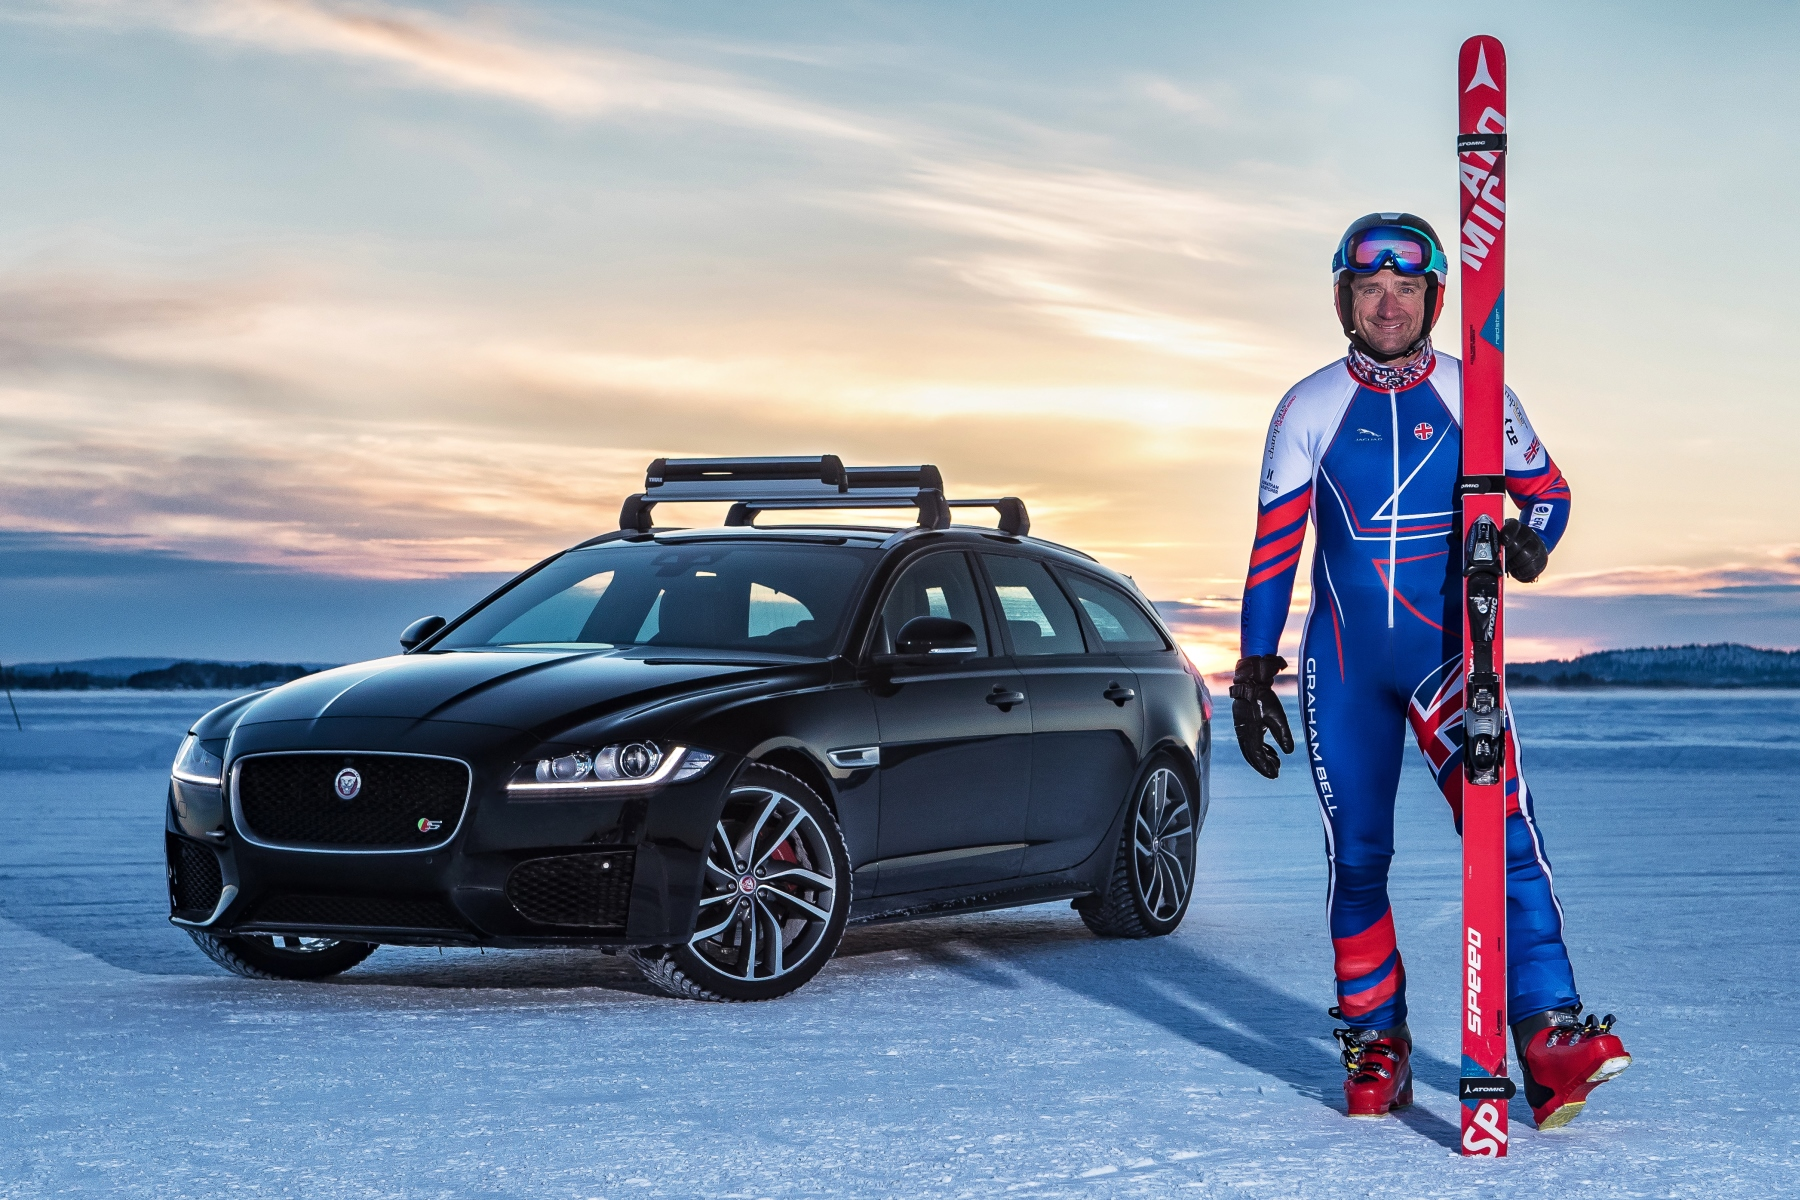 Jaguar helps set ski towing speed record